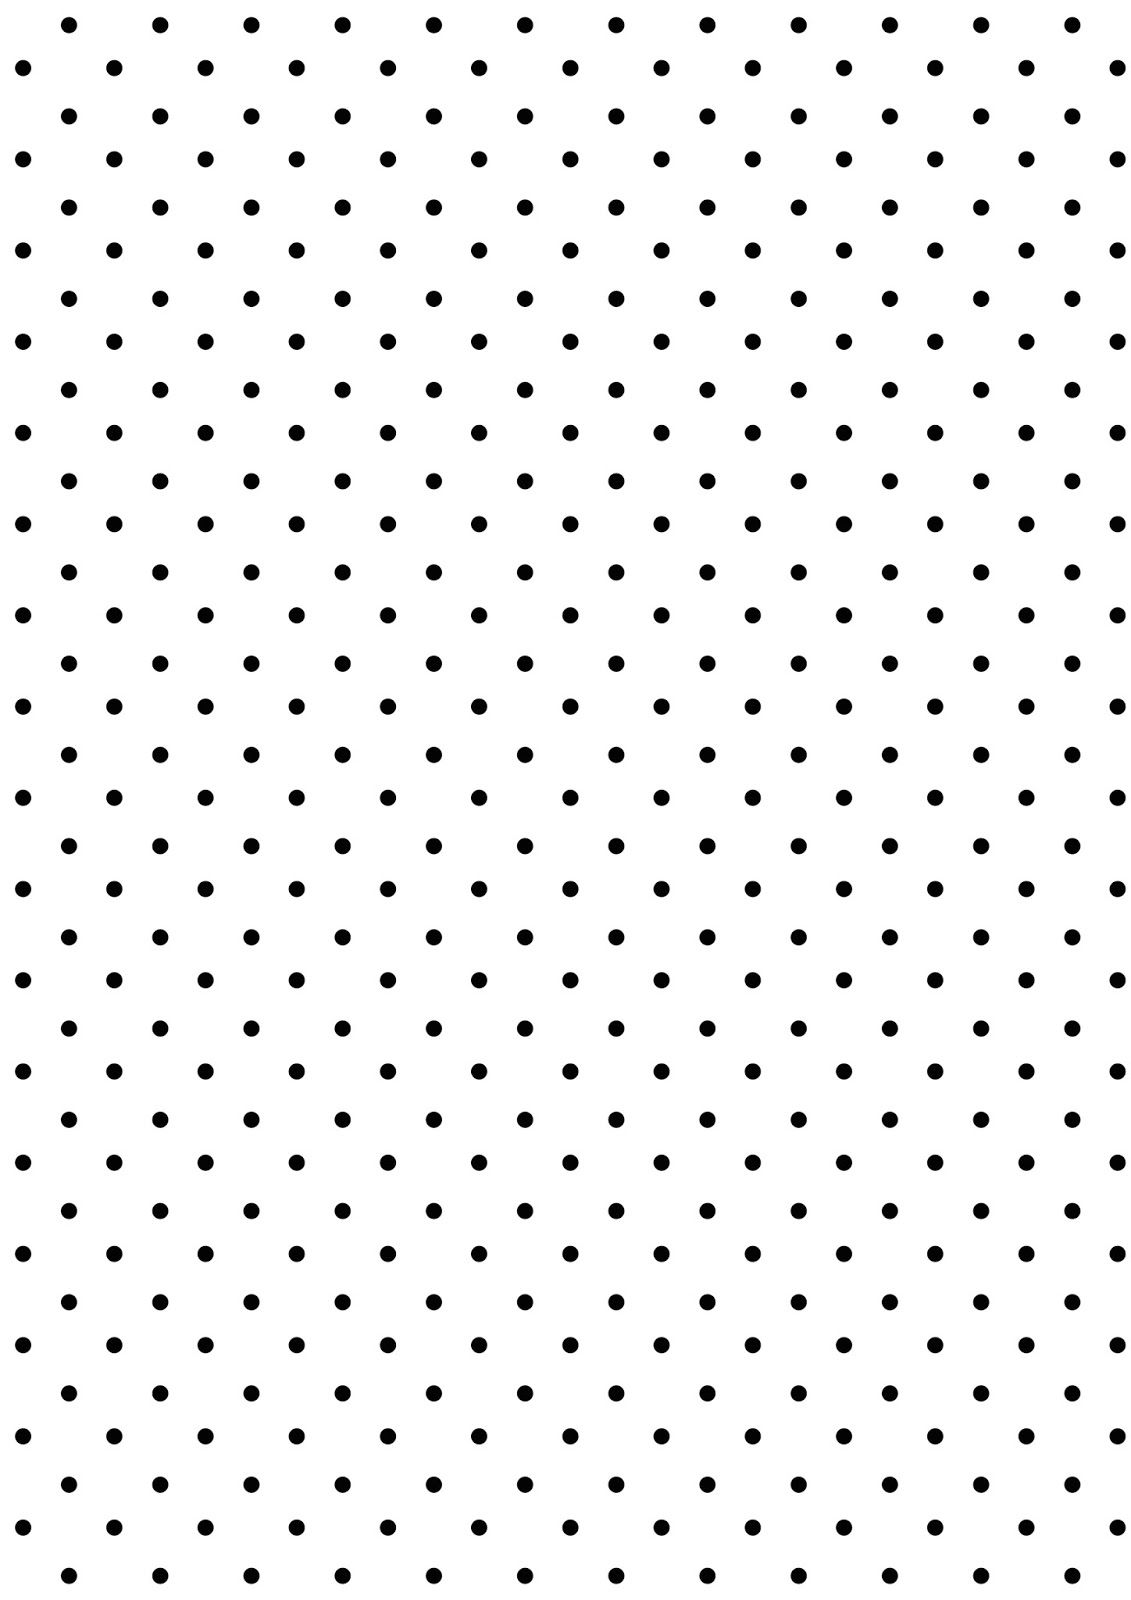 Free digital polka dot scrapbooking paper ausdruckbares for Black and white polka dot decorations